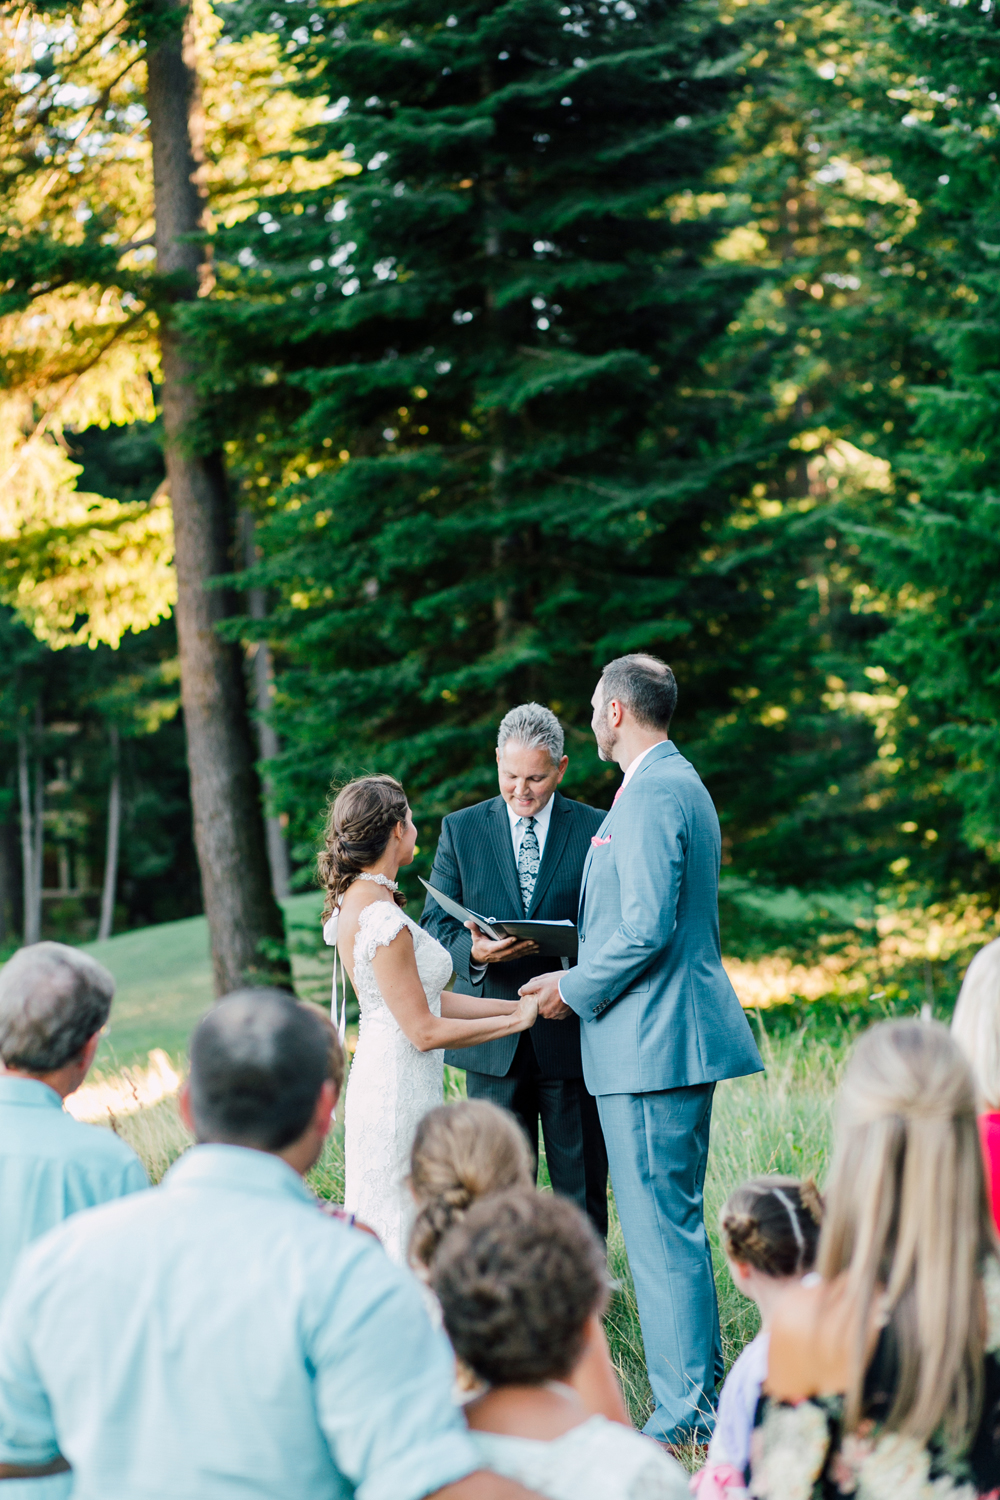 053-suncadia-cle-elum-wedding-photographer-katheryn-moran-washington-wedding-mandy-mike.jpg